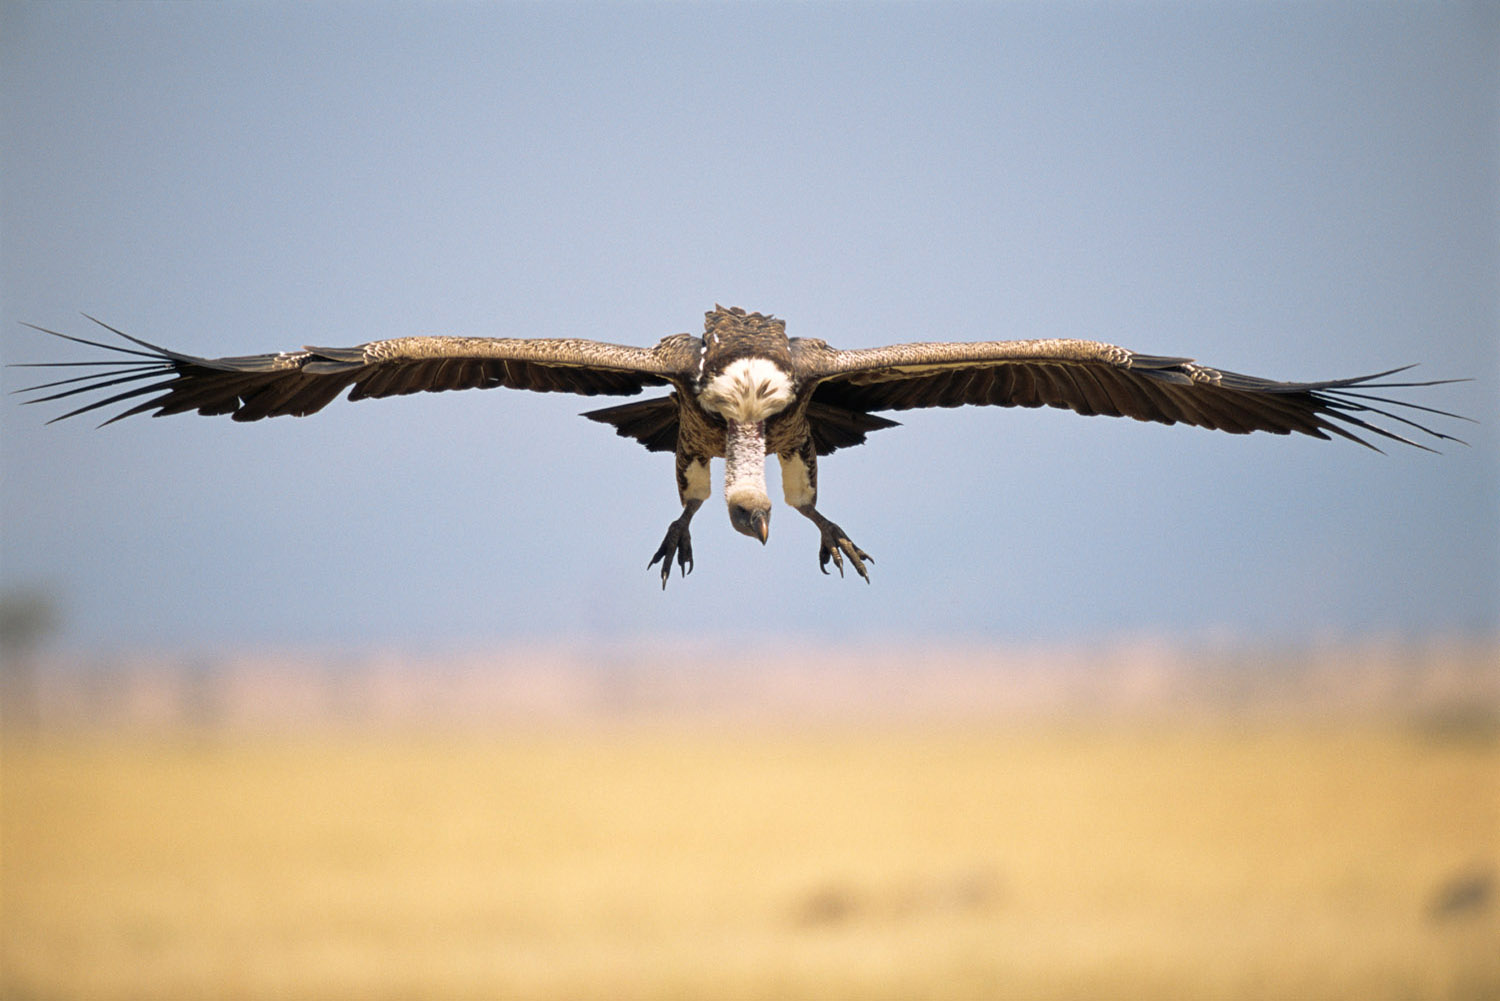 Ruppell's griffon vulture in flight, Masai Mara National Reserve, Kenya